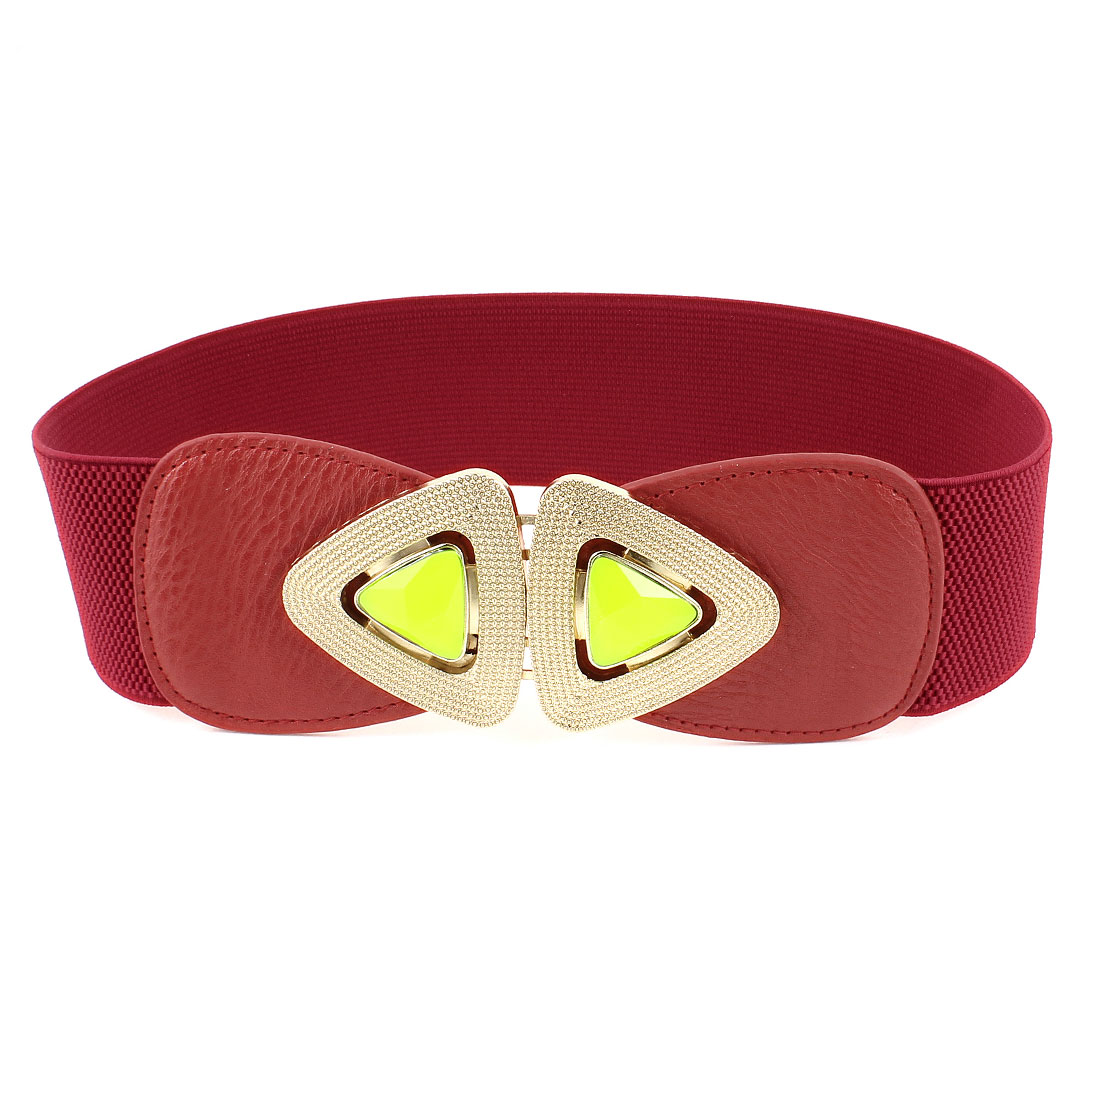 Interlocking Buckle 6cm Wide Red Elastic Waist Belt Band Waistband for Lady